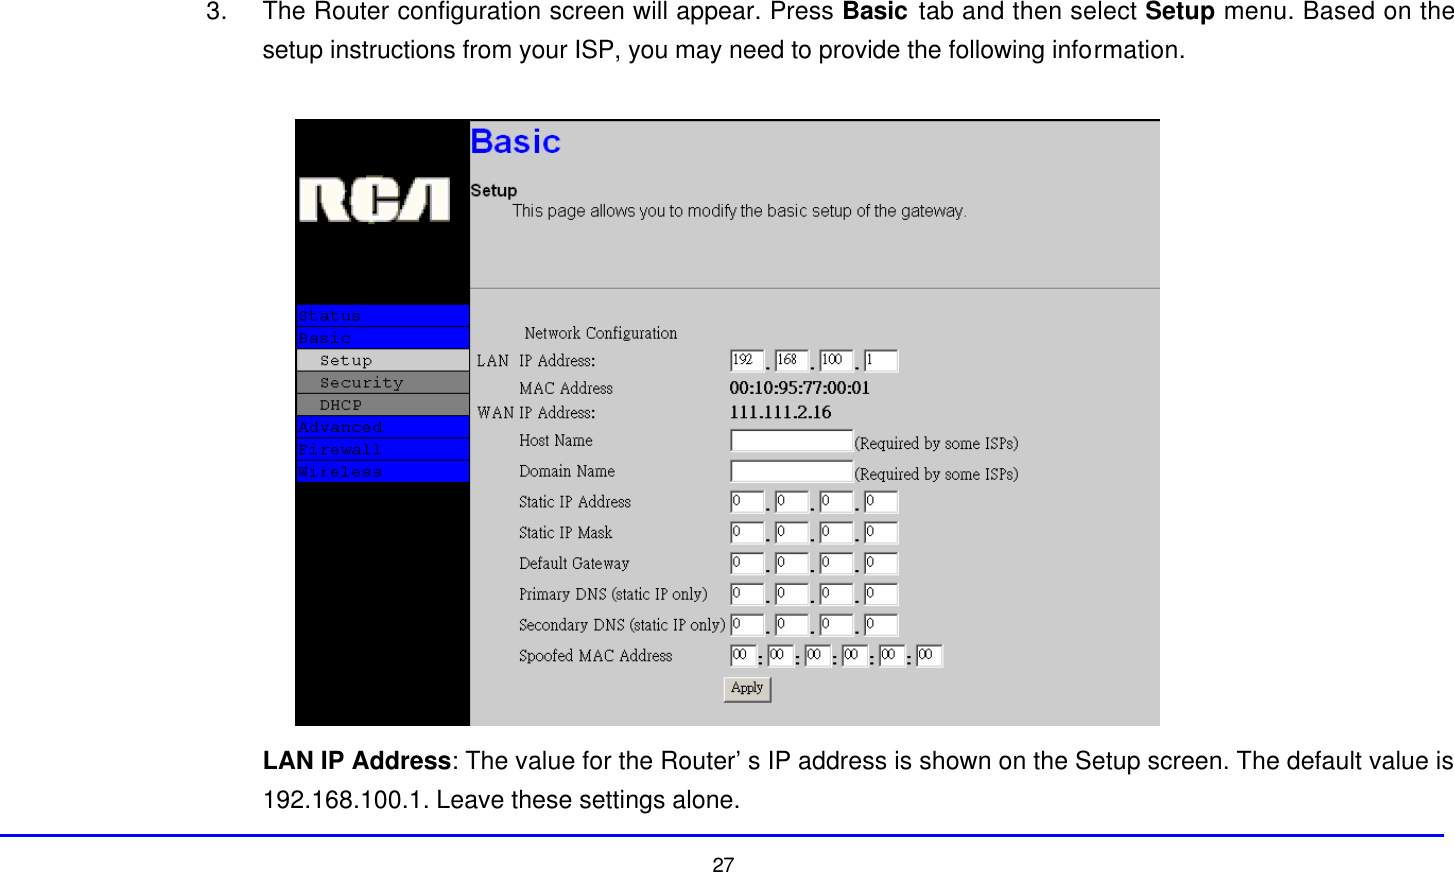 27  3. The Router configuration screen will appear. Press Basic tab and then select Setup menu. Based on the setup instructions from your ISP, you may need to provide the following information.   LAN IP Address: The value for the Router's IP address is shown on the Setup screen. The default value is 192.168.100.1. Leave these settings alone.